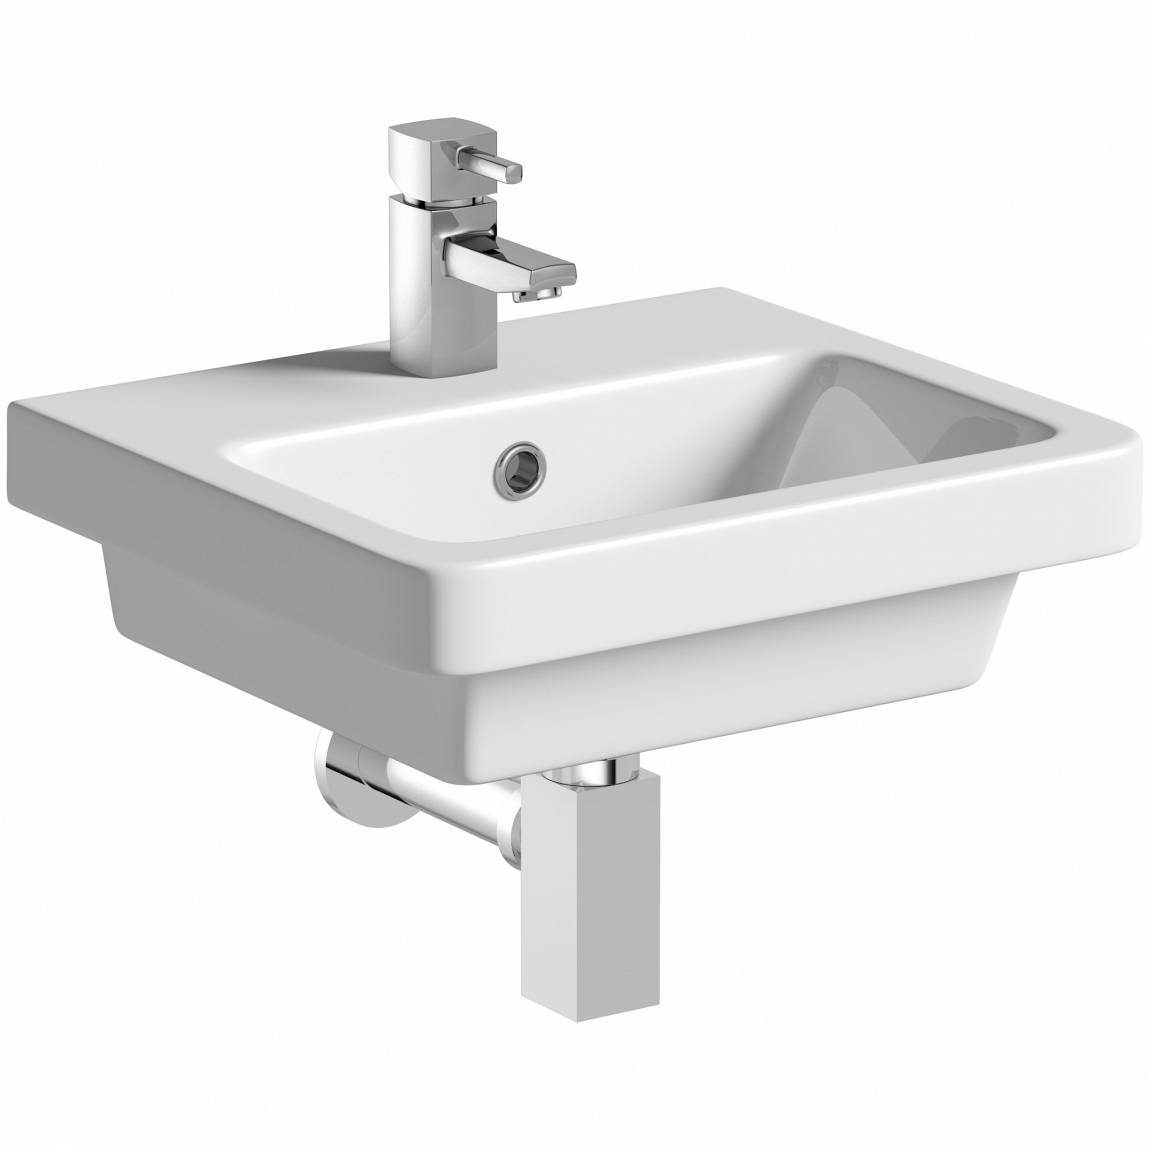 Image of Verso 1TH 400mm Wall Hung Basin